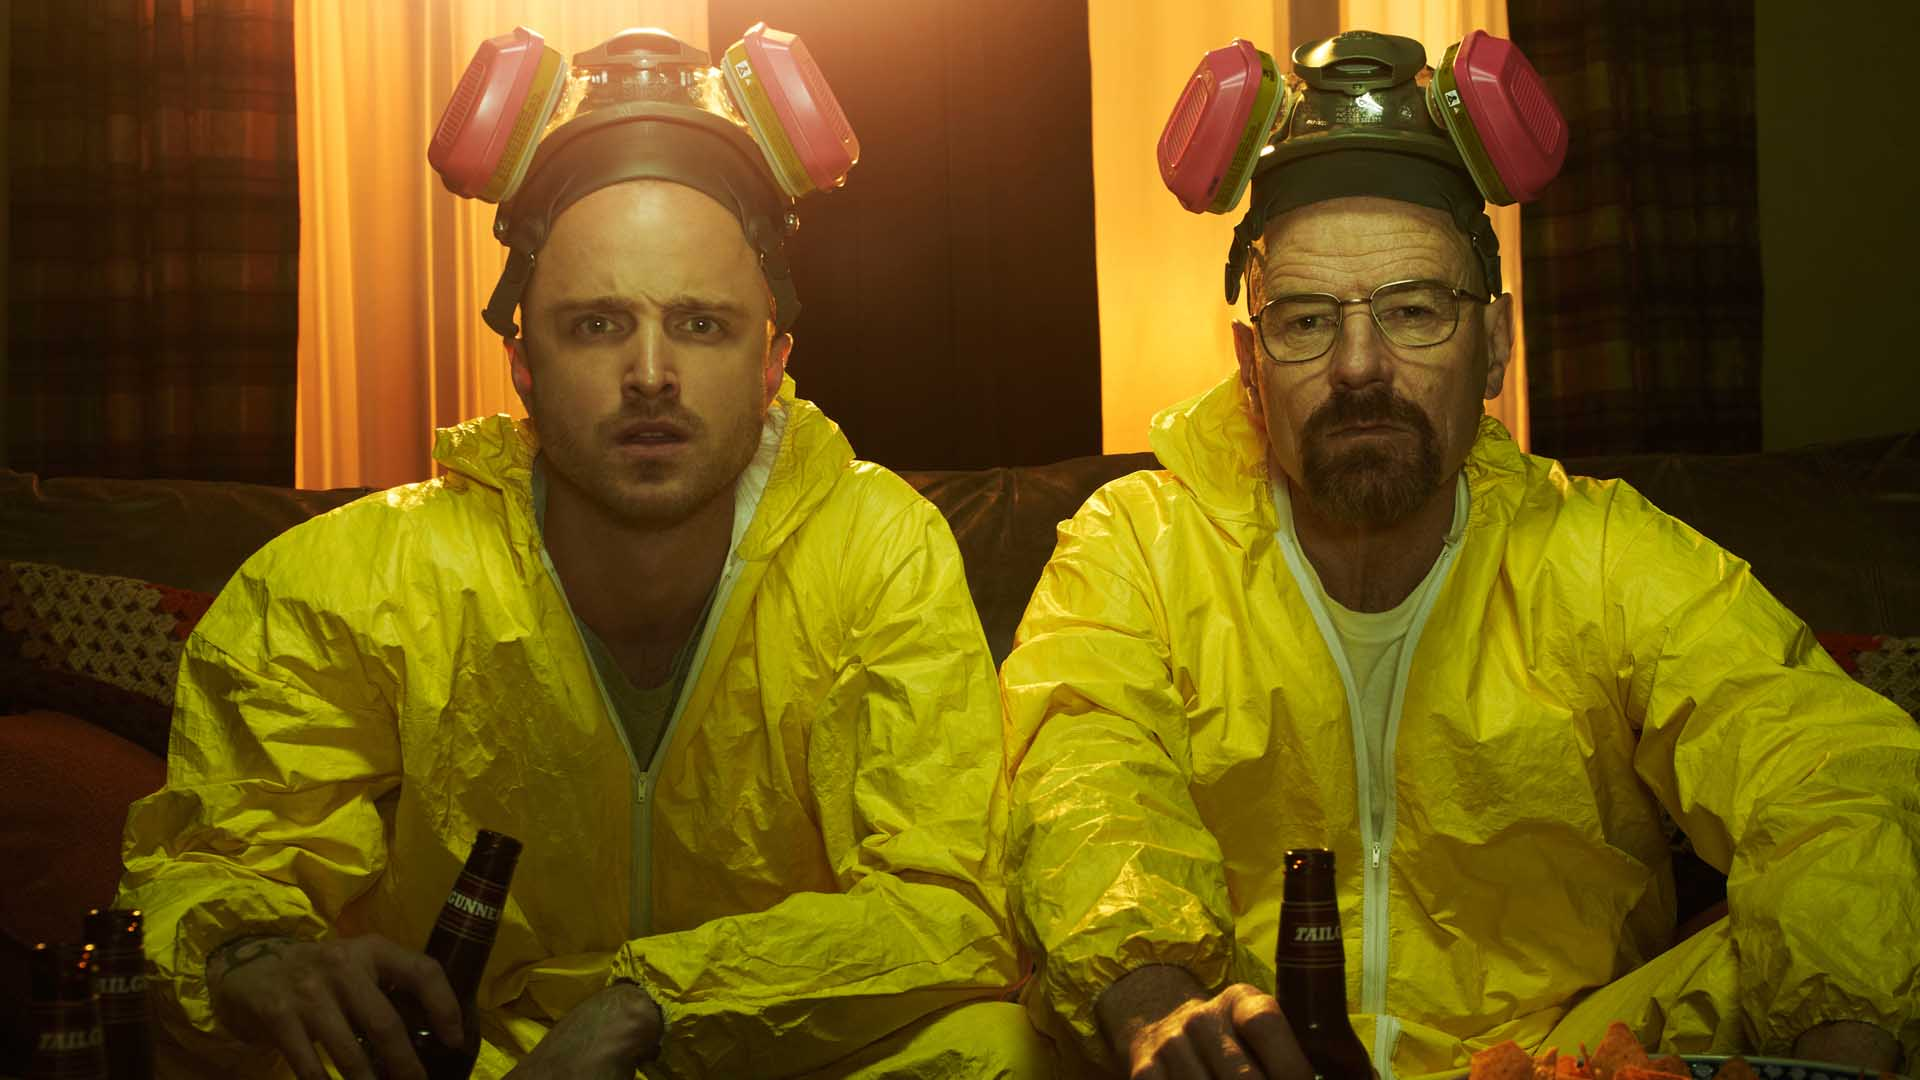 Breaking bad: la serie tv che non si sposta dalle classifiche